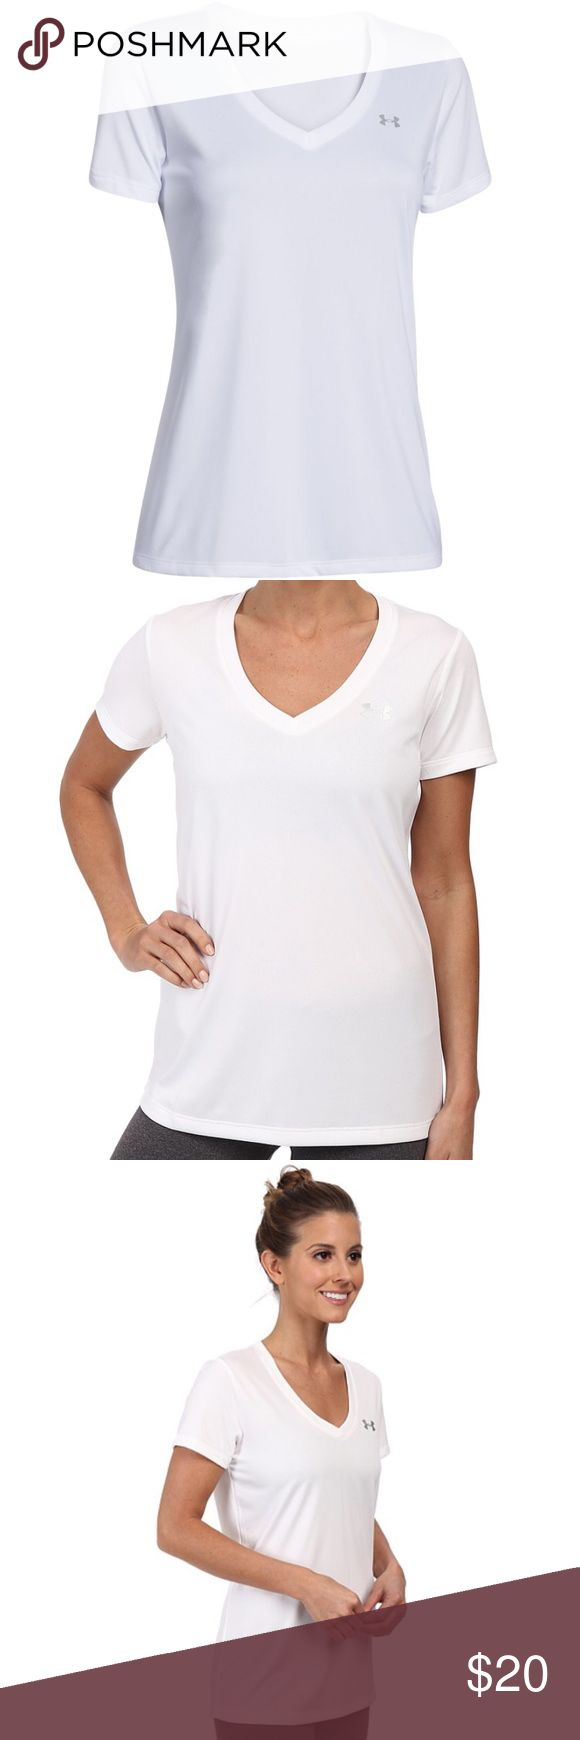 UNDER ARMOUR T Brand new with tags under armour v neck ladies t shirt. Size XL, loose fit. Model is wearing an XS. No trades or holds so please don't ask. Price is firm due to posh fees. Under Armour Tops Tees - Short Sleeve